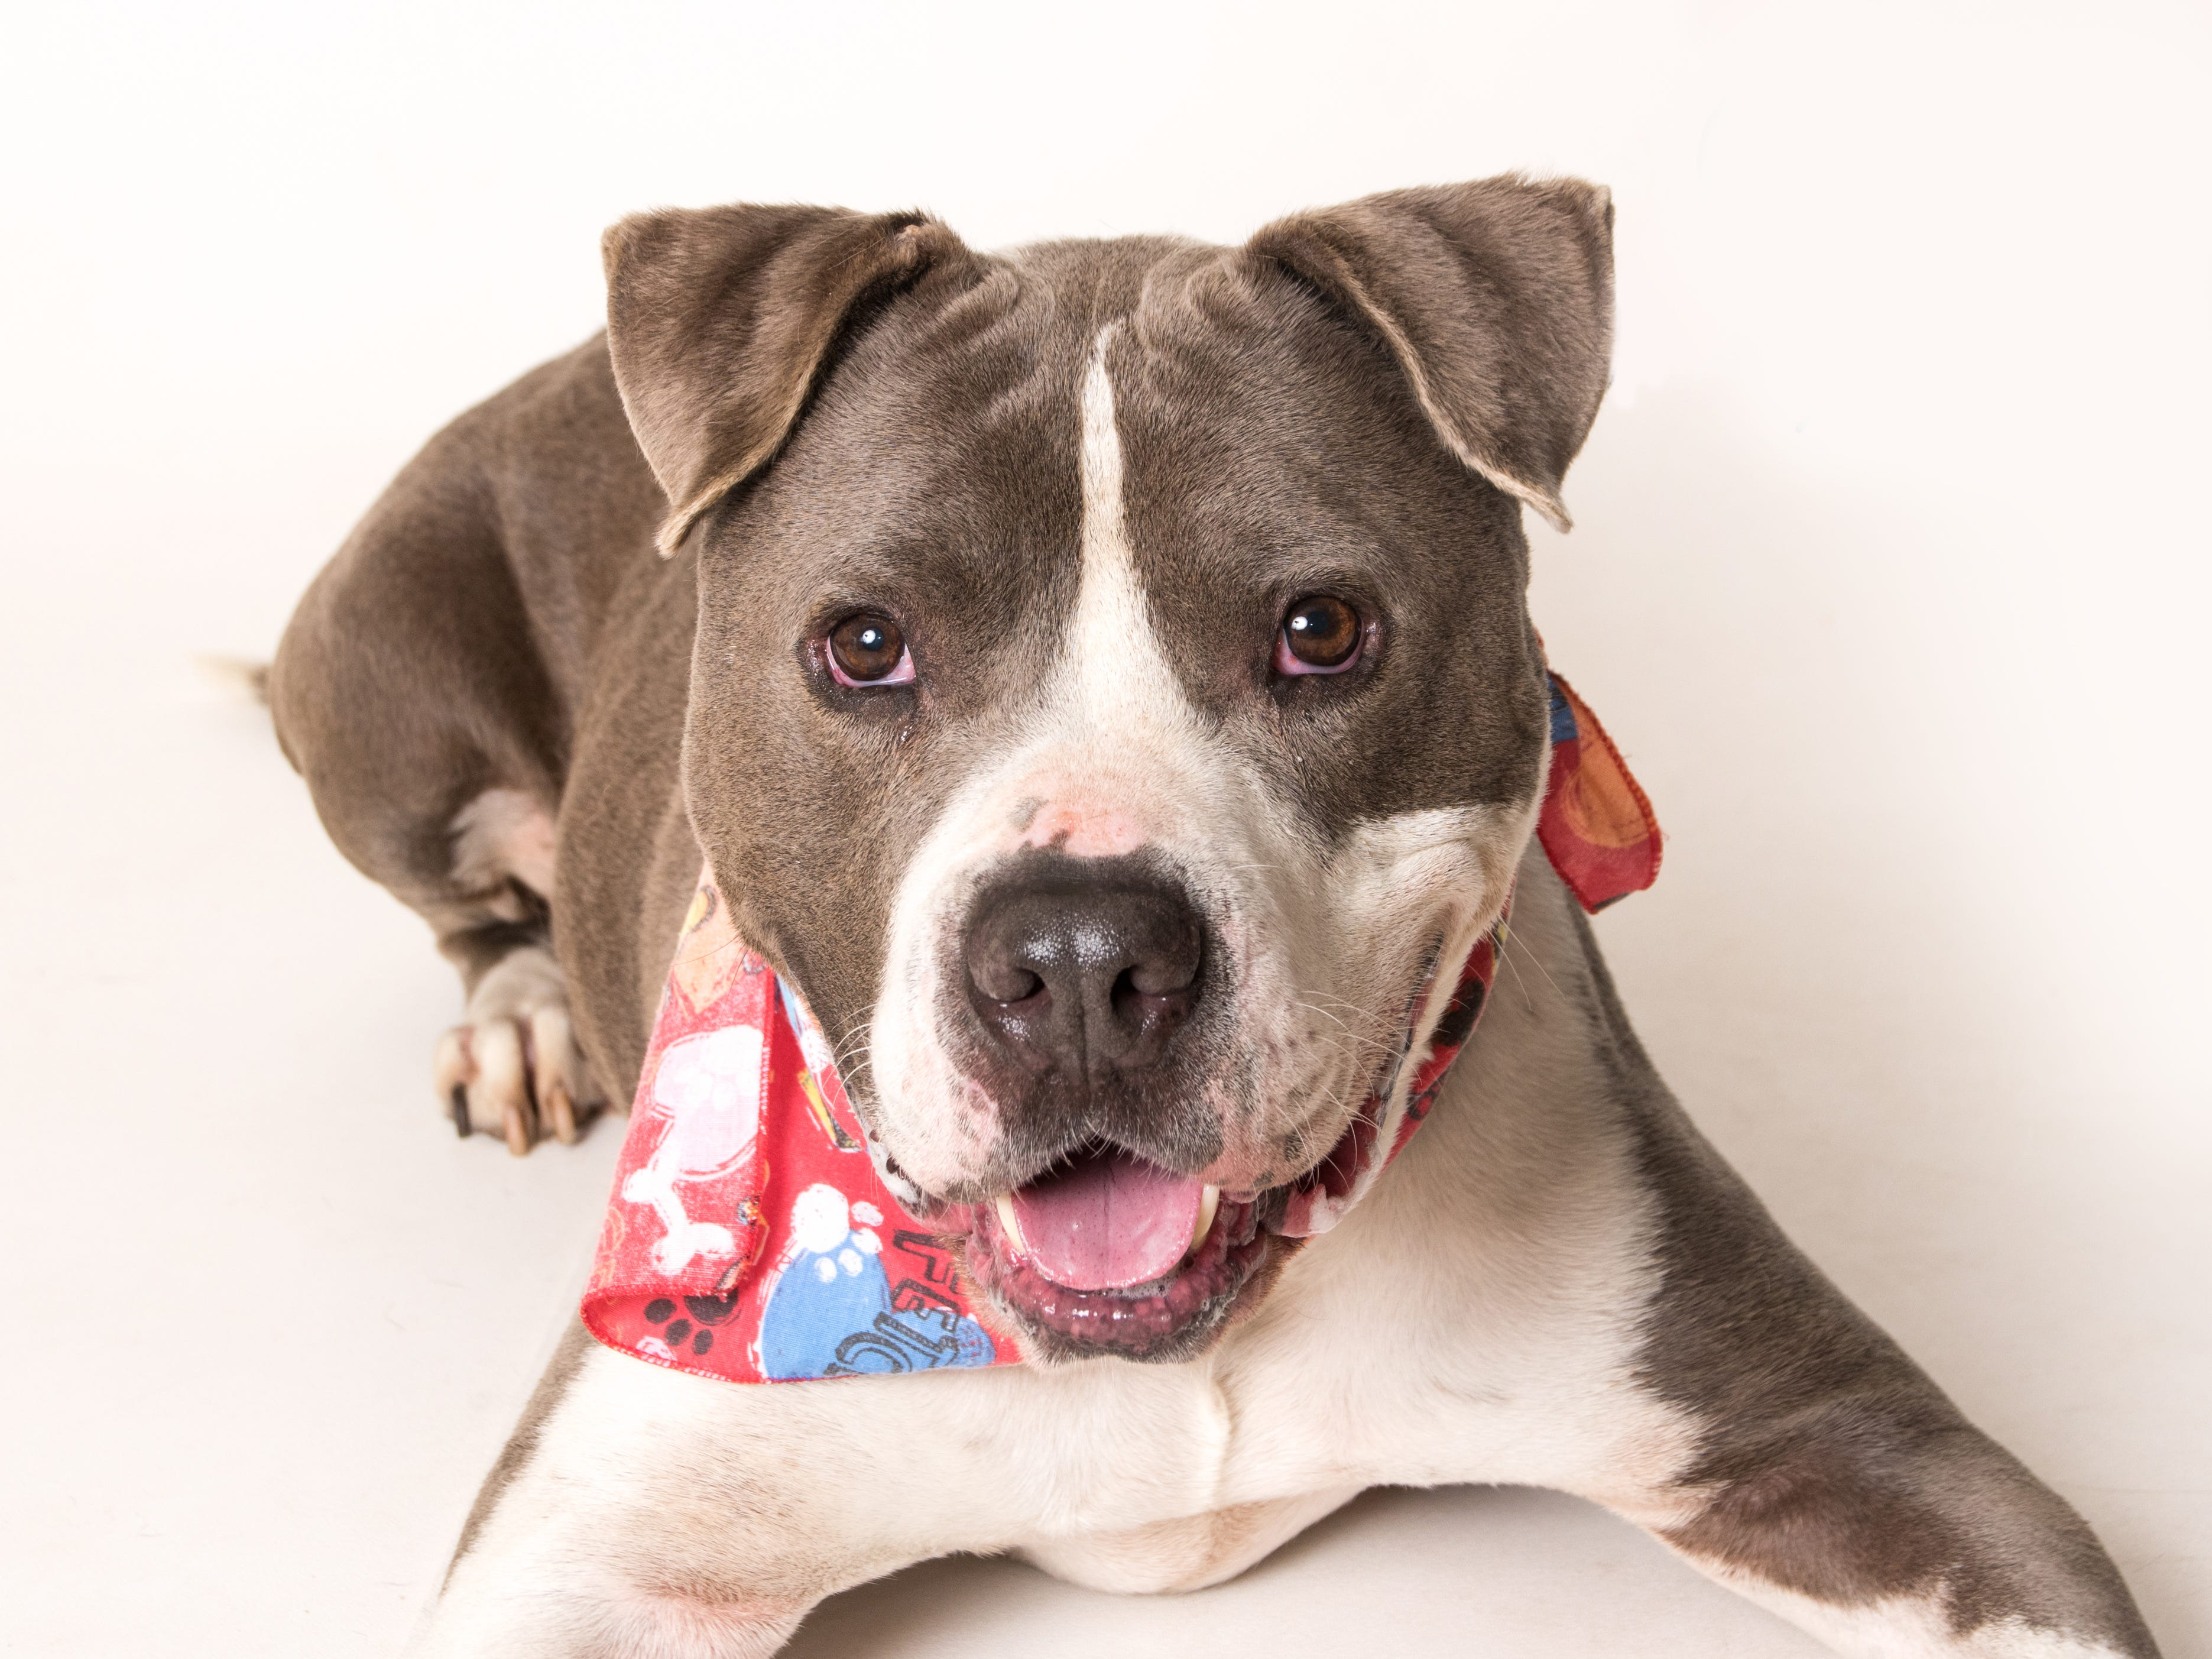 Harley is a playful, sweet and engaging, big, strong boy looking for a family who will play with him and love him for his great personality. He is very playful andfriendly. He loves playing fetch with a ball or tug toy and loves his tummyrubs in between playing fetch. He is responsive to training and loves toplease.Harley is at the Camarillo location of Ventura County Animal Services, 600 Aviation Drive, Camarillo. Ask for ID A591221. For more information on other services available at that locationor to view other animals available for adoption, go to www.vcas.us.